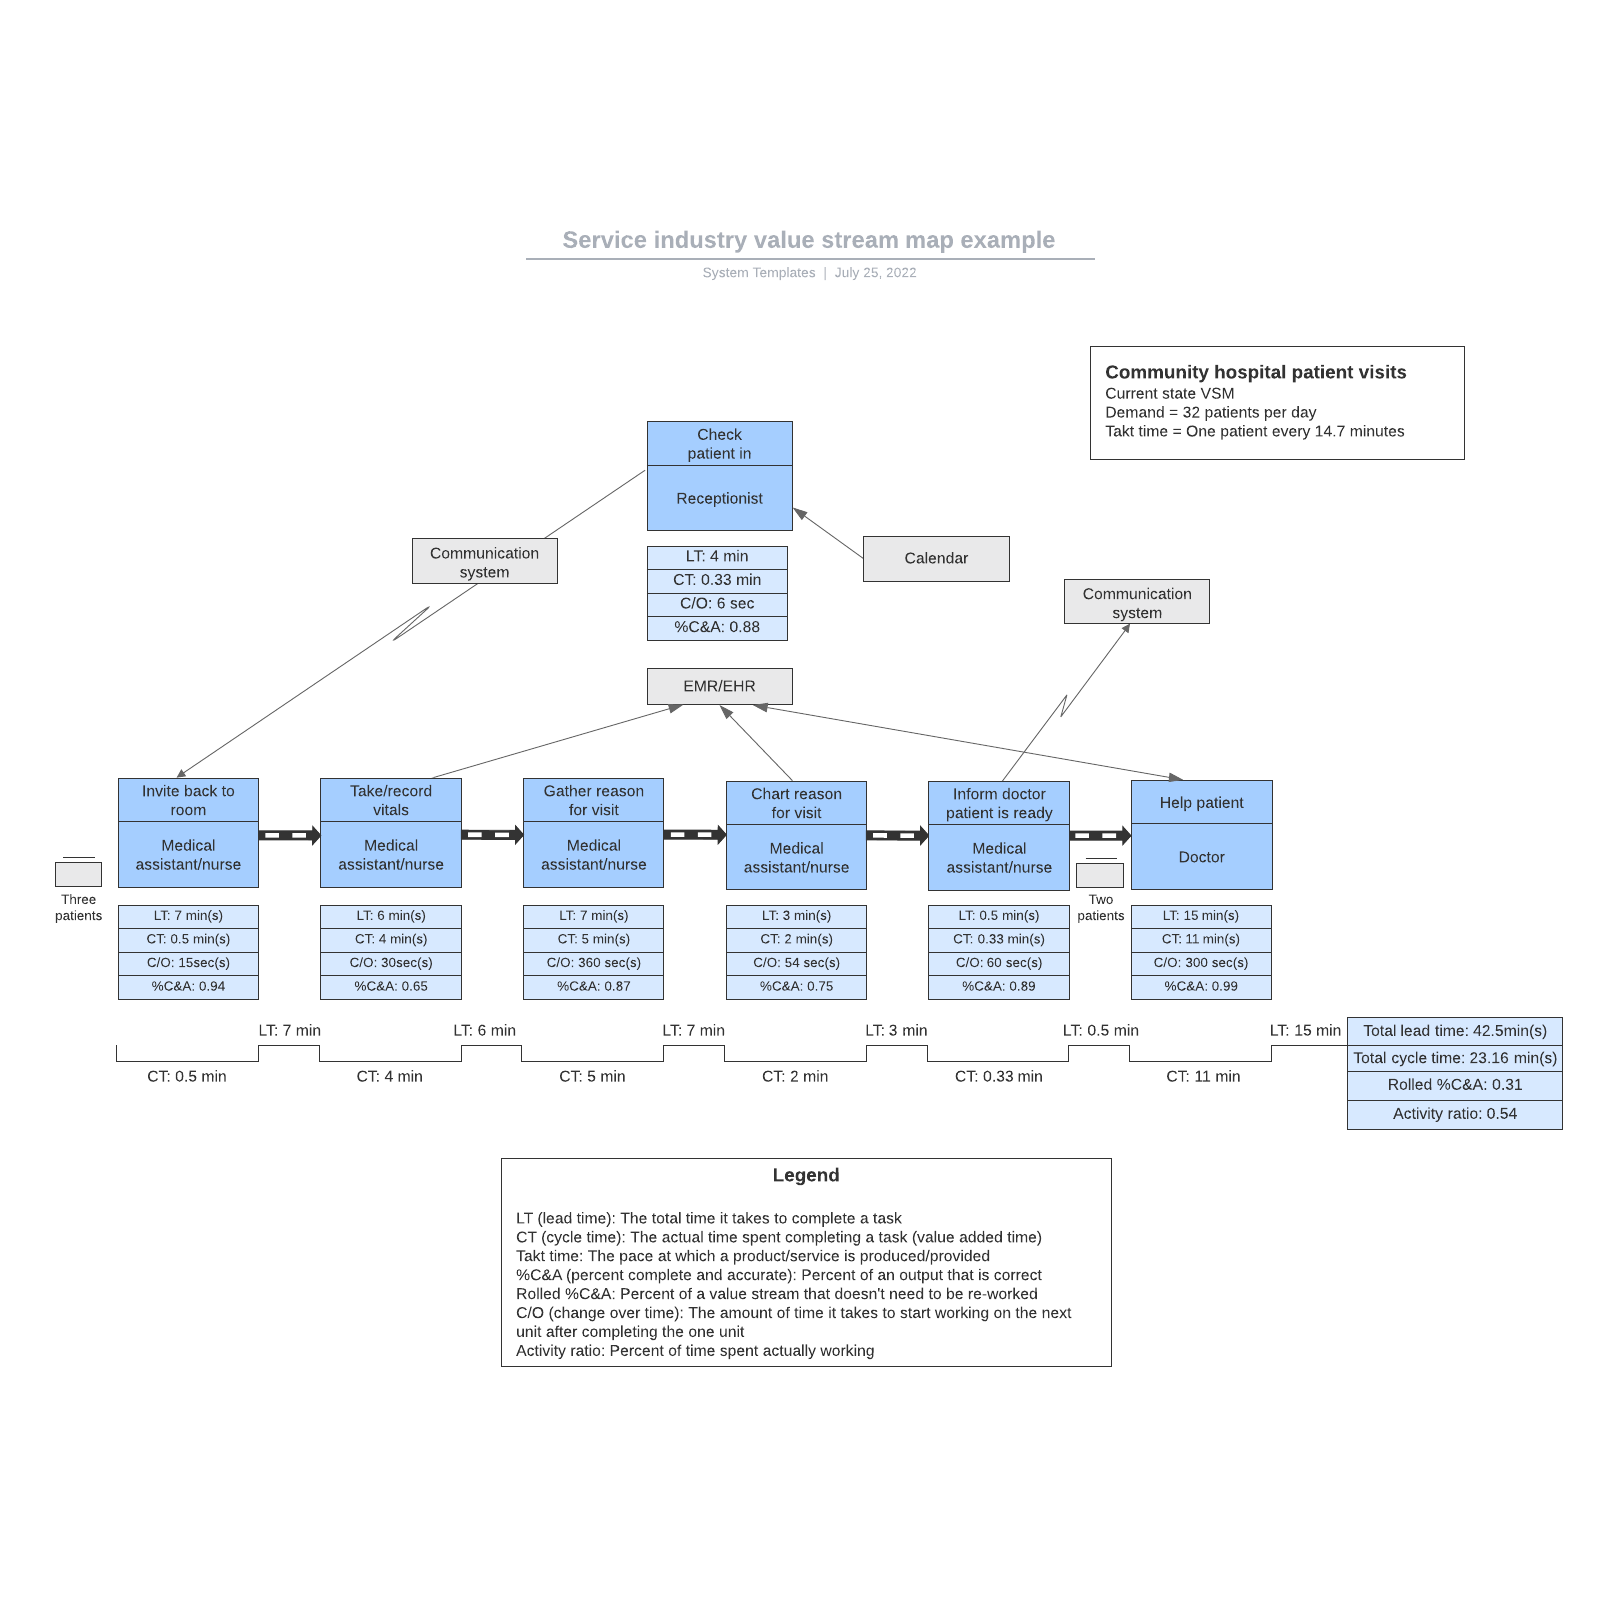 Service industry value stream map example